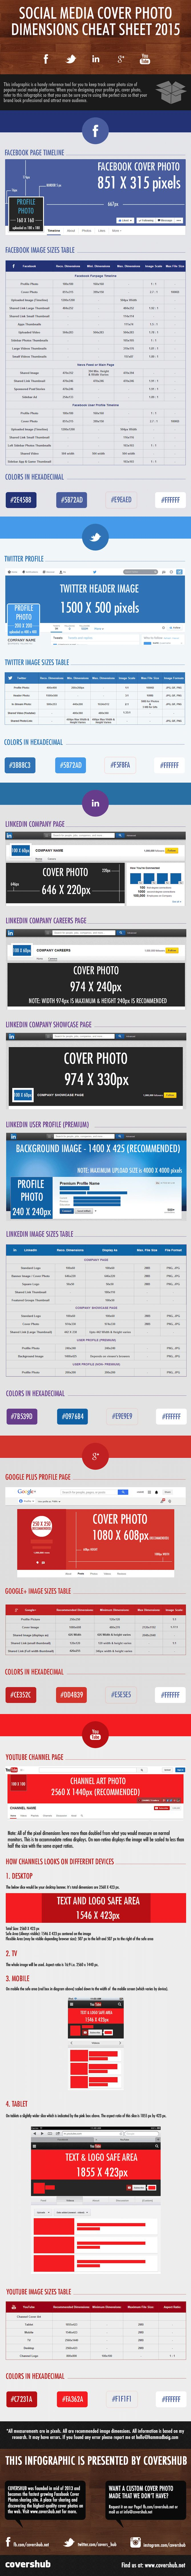 A Detailed Guide to Photo & Image Sizes on Facebook, Twitter, YouTube & More [Infographic]